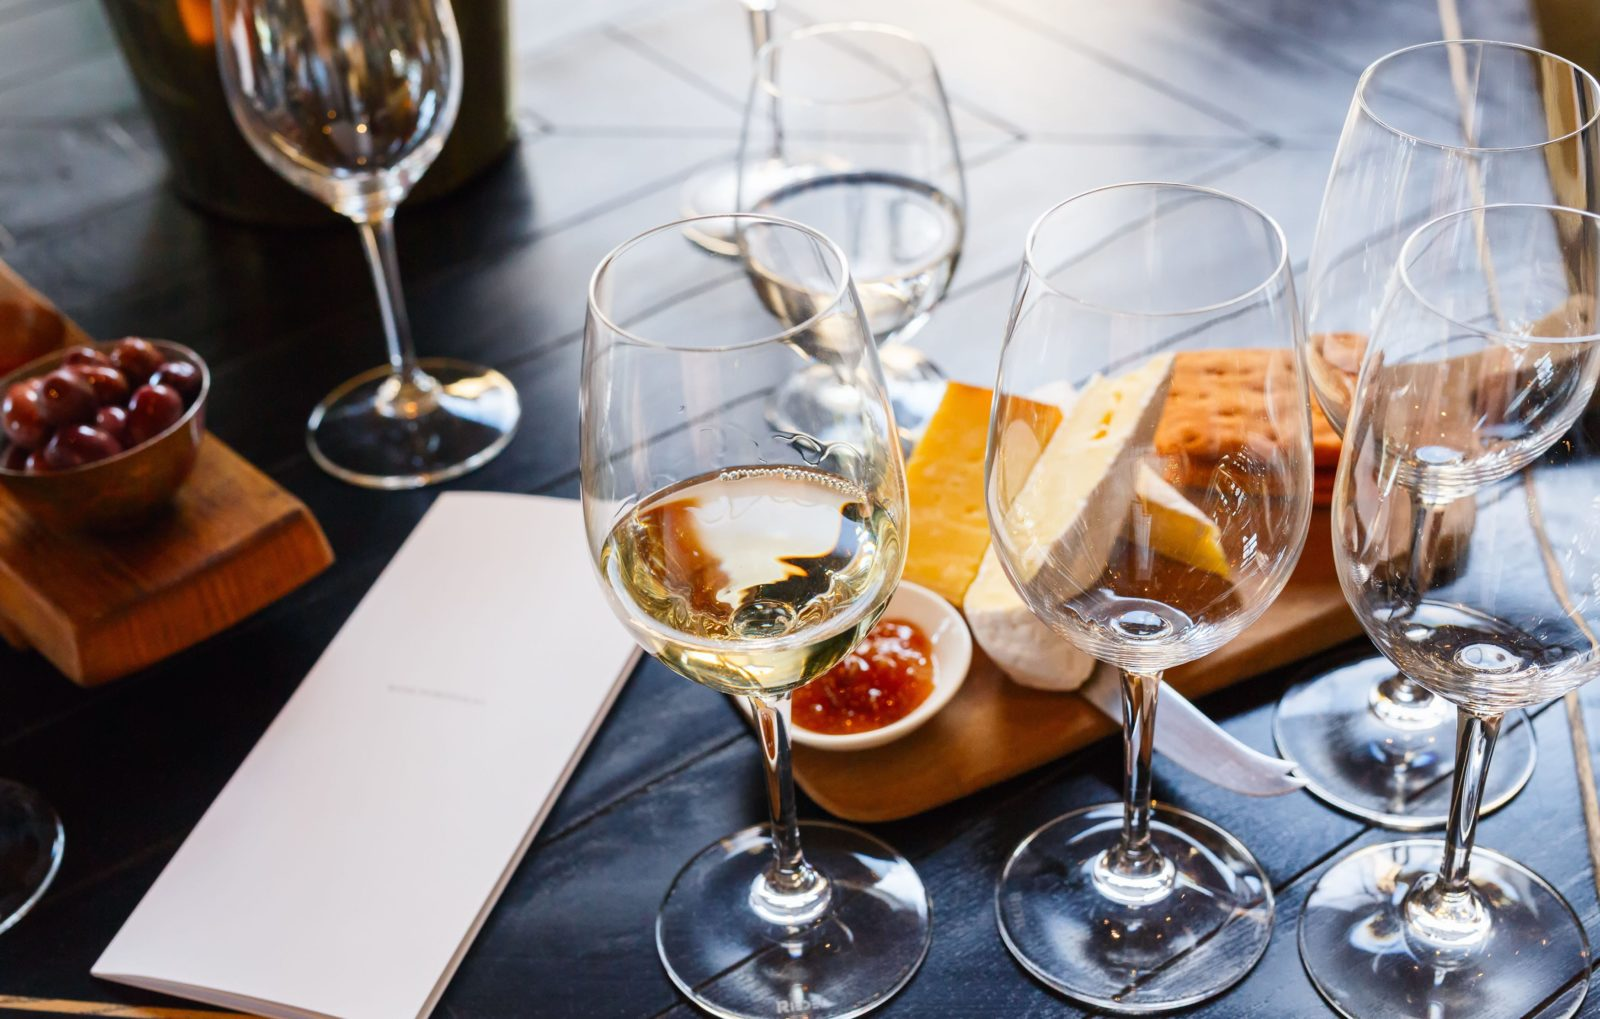 south-africa-CUISINE -Wine-and-cheese-tasting-min